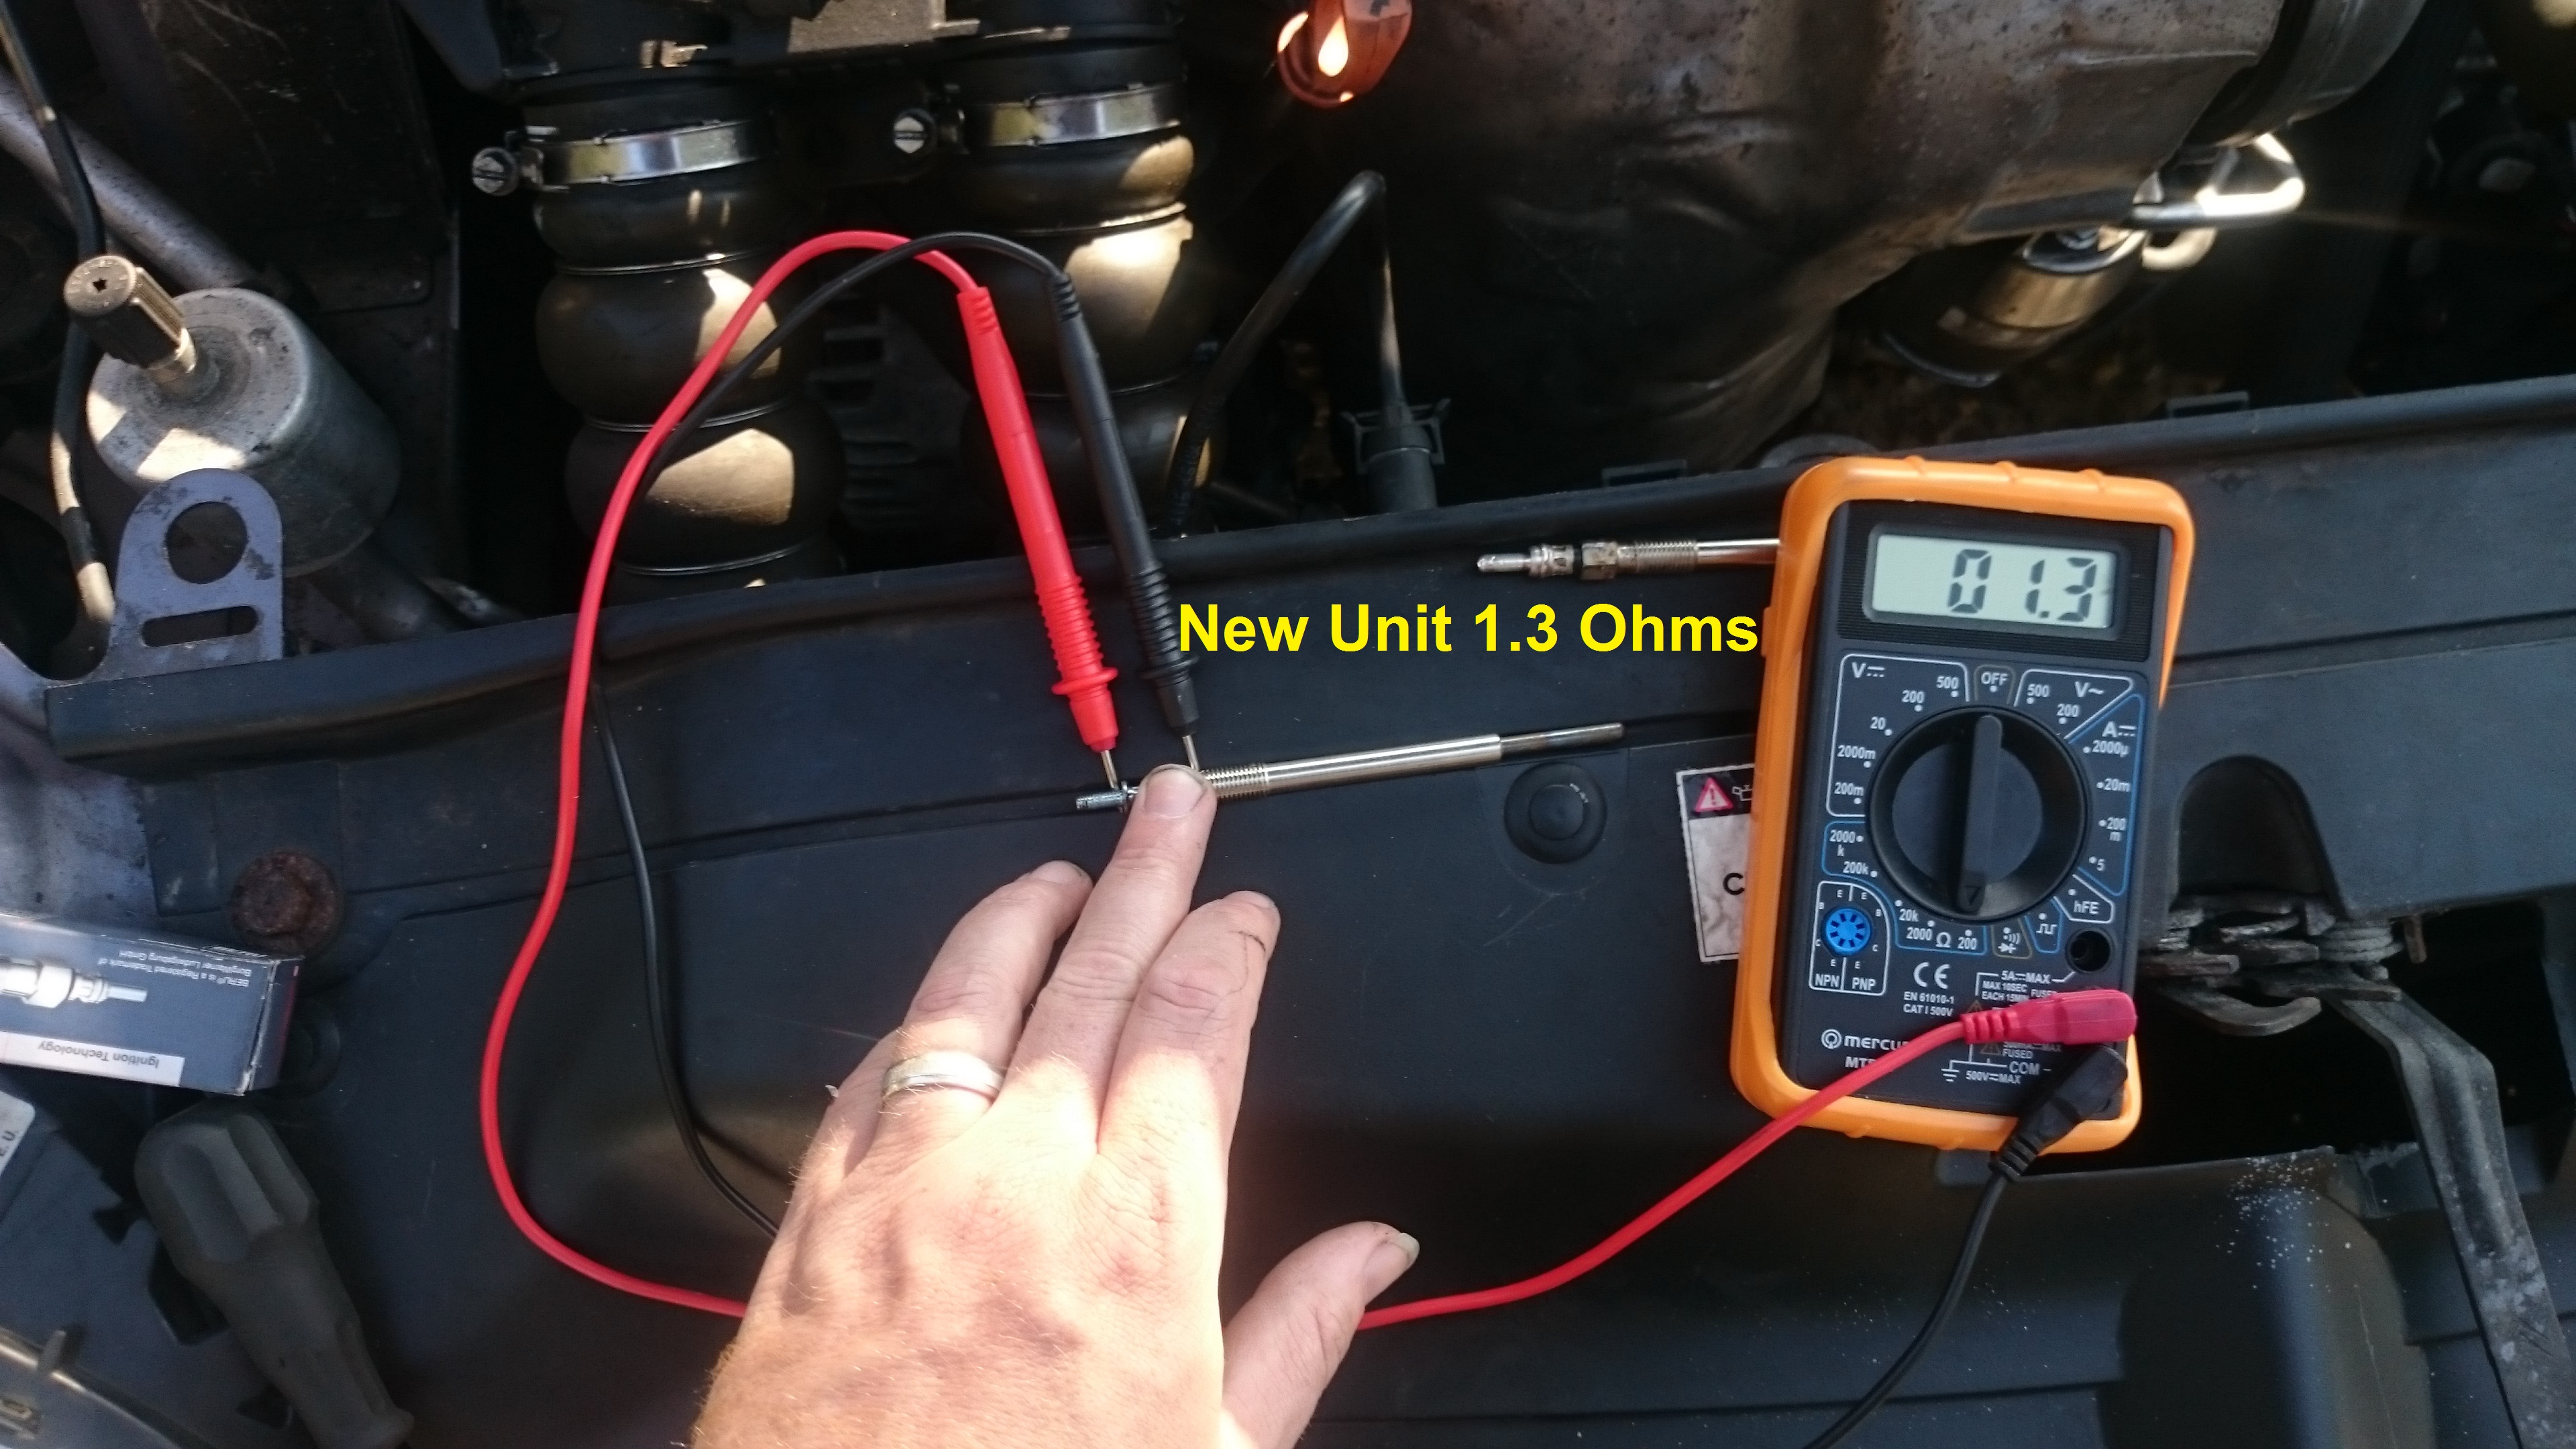 ... Ohms just touching the leads together (cheap unit) so 1 Ohm is a  reasonable estimate, which would equate to 48 Watts of power (@ 12V, more  at 13.8V).